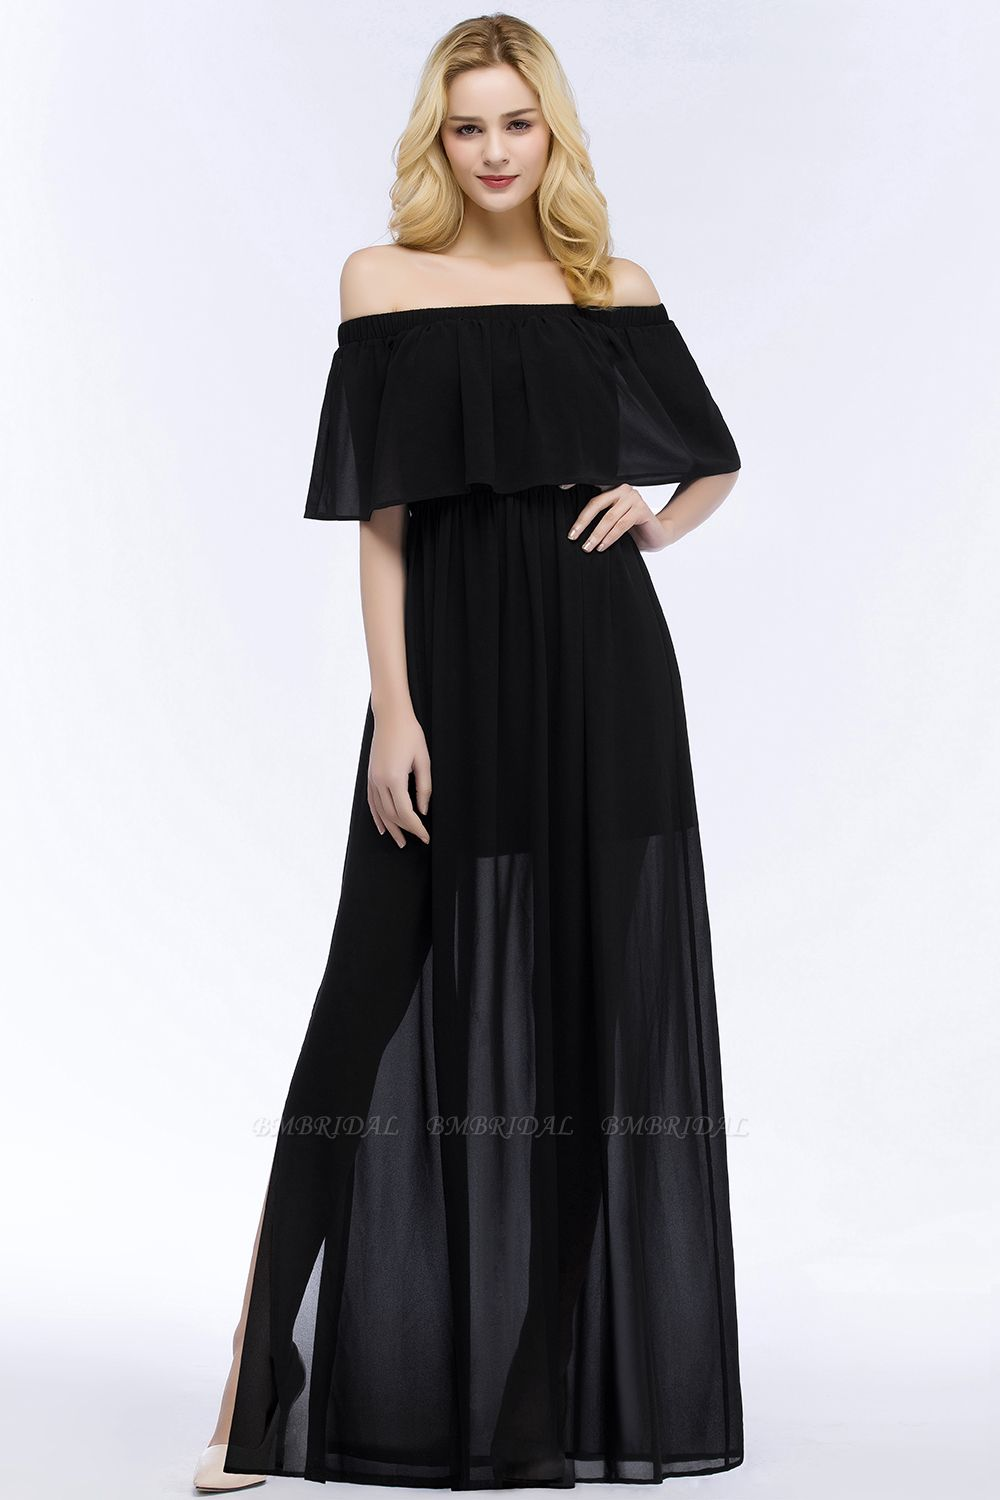 BMbridal Affordable Black Off-the-shoulder Long Chiffon Bridesmaid Dress Online